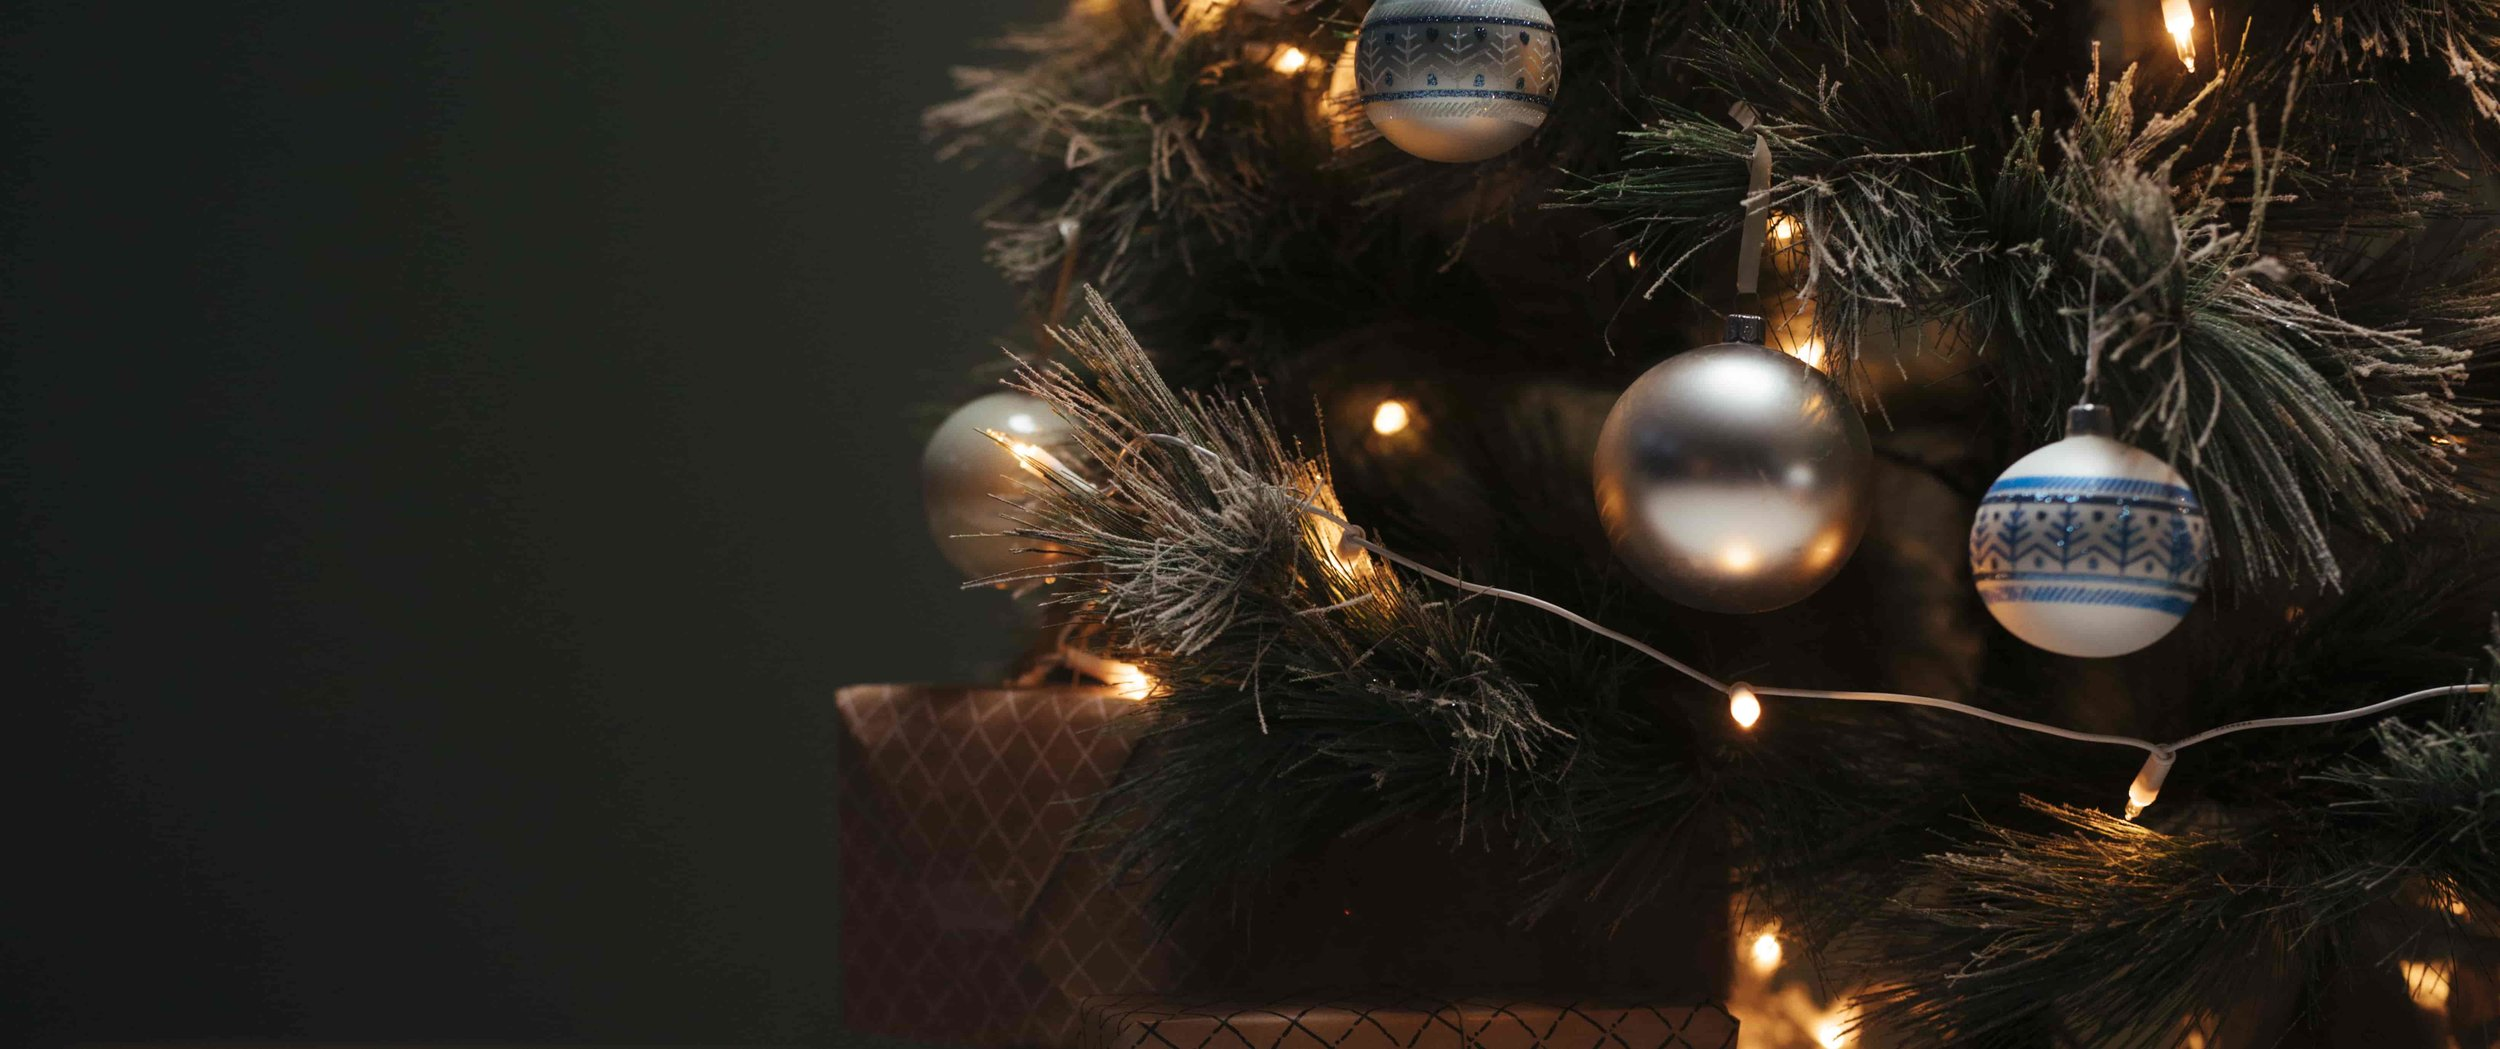 Best Place For Christmas Decorations 55 Best Indoor Outdoor Christmas Decorations 2019 All Price